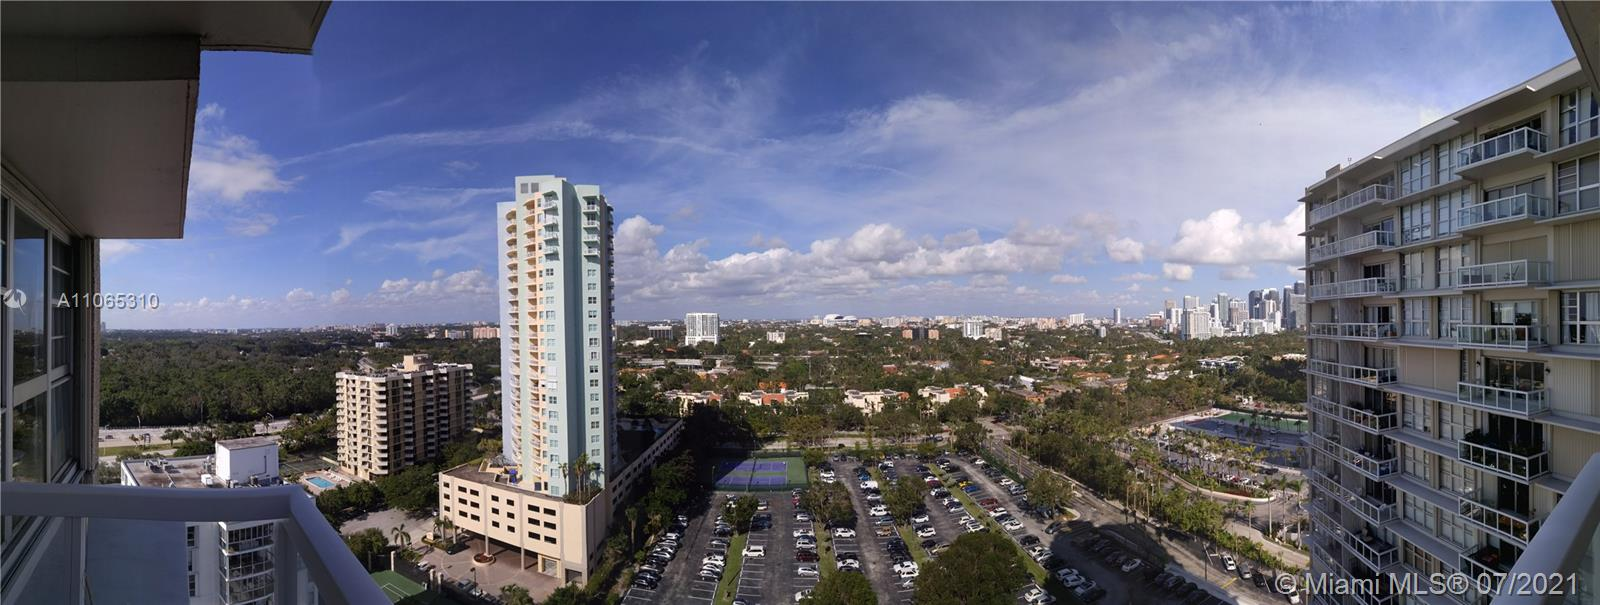 GREAT OPPORTUNITY IN RECENTLY UPDATED BUILDING, LARGE 1 BEDROOM AND 1 BATHROOM UNIT IN THE BEST AREA OF BRICKELL AVENUE, WITH GREAT CITY AND GARDEN VIEWS FROM ALL ROOMS, FULL MARBLE FLOORS, BRAND NEW STAINLESS STEEL APPLIANCES, UPDATED BATHROOM, UNIT HAS JUST BEEN PAINTED, OPEN KITCHEN, LARGE BALCONY, ACCORDION SHUTTERS. RENTAL INCLUDES, HOT WATER, BASIC CABLE, WATER AND SEWER, REMODELED GYM AND VERY NICE POOL AREA WITH BBQ. CABANAS AND MUCH MORE, MANAGEMENT ON SITE, SECURITY 24/7, TENNIS, BBQ, POOL, HOT TUB, CONVENIENCE STORE, KIDS PLAYGROUND, ASSIGNED PARKING SPACE AND VALET, EXCELLENT LOCATION WITH EASY ACCESS TO HIGHWAYS, NO WASHER /DRYER INSIDE THE UNIT LAUNDRY FACILITIES IN THE BUILDING, EASY TO SHOW, 24 HOUR NOTICE, SEE BROKER REMARKS.